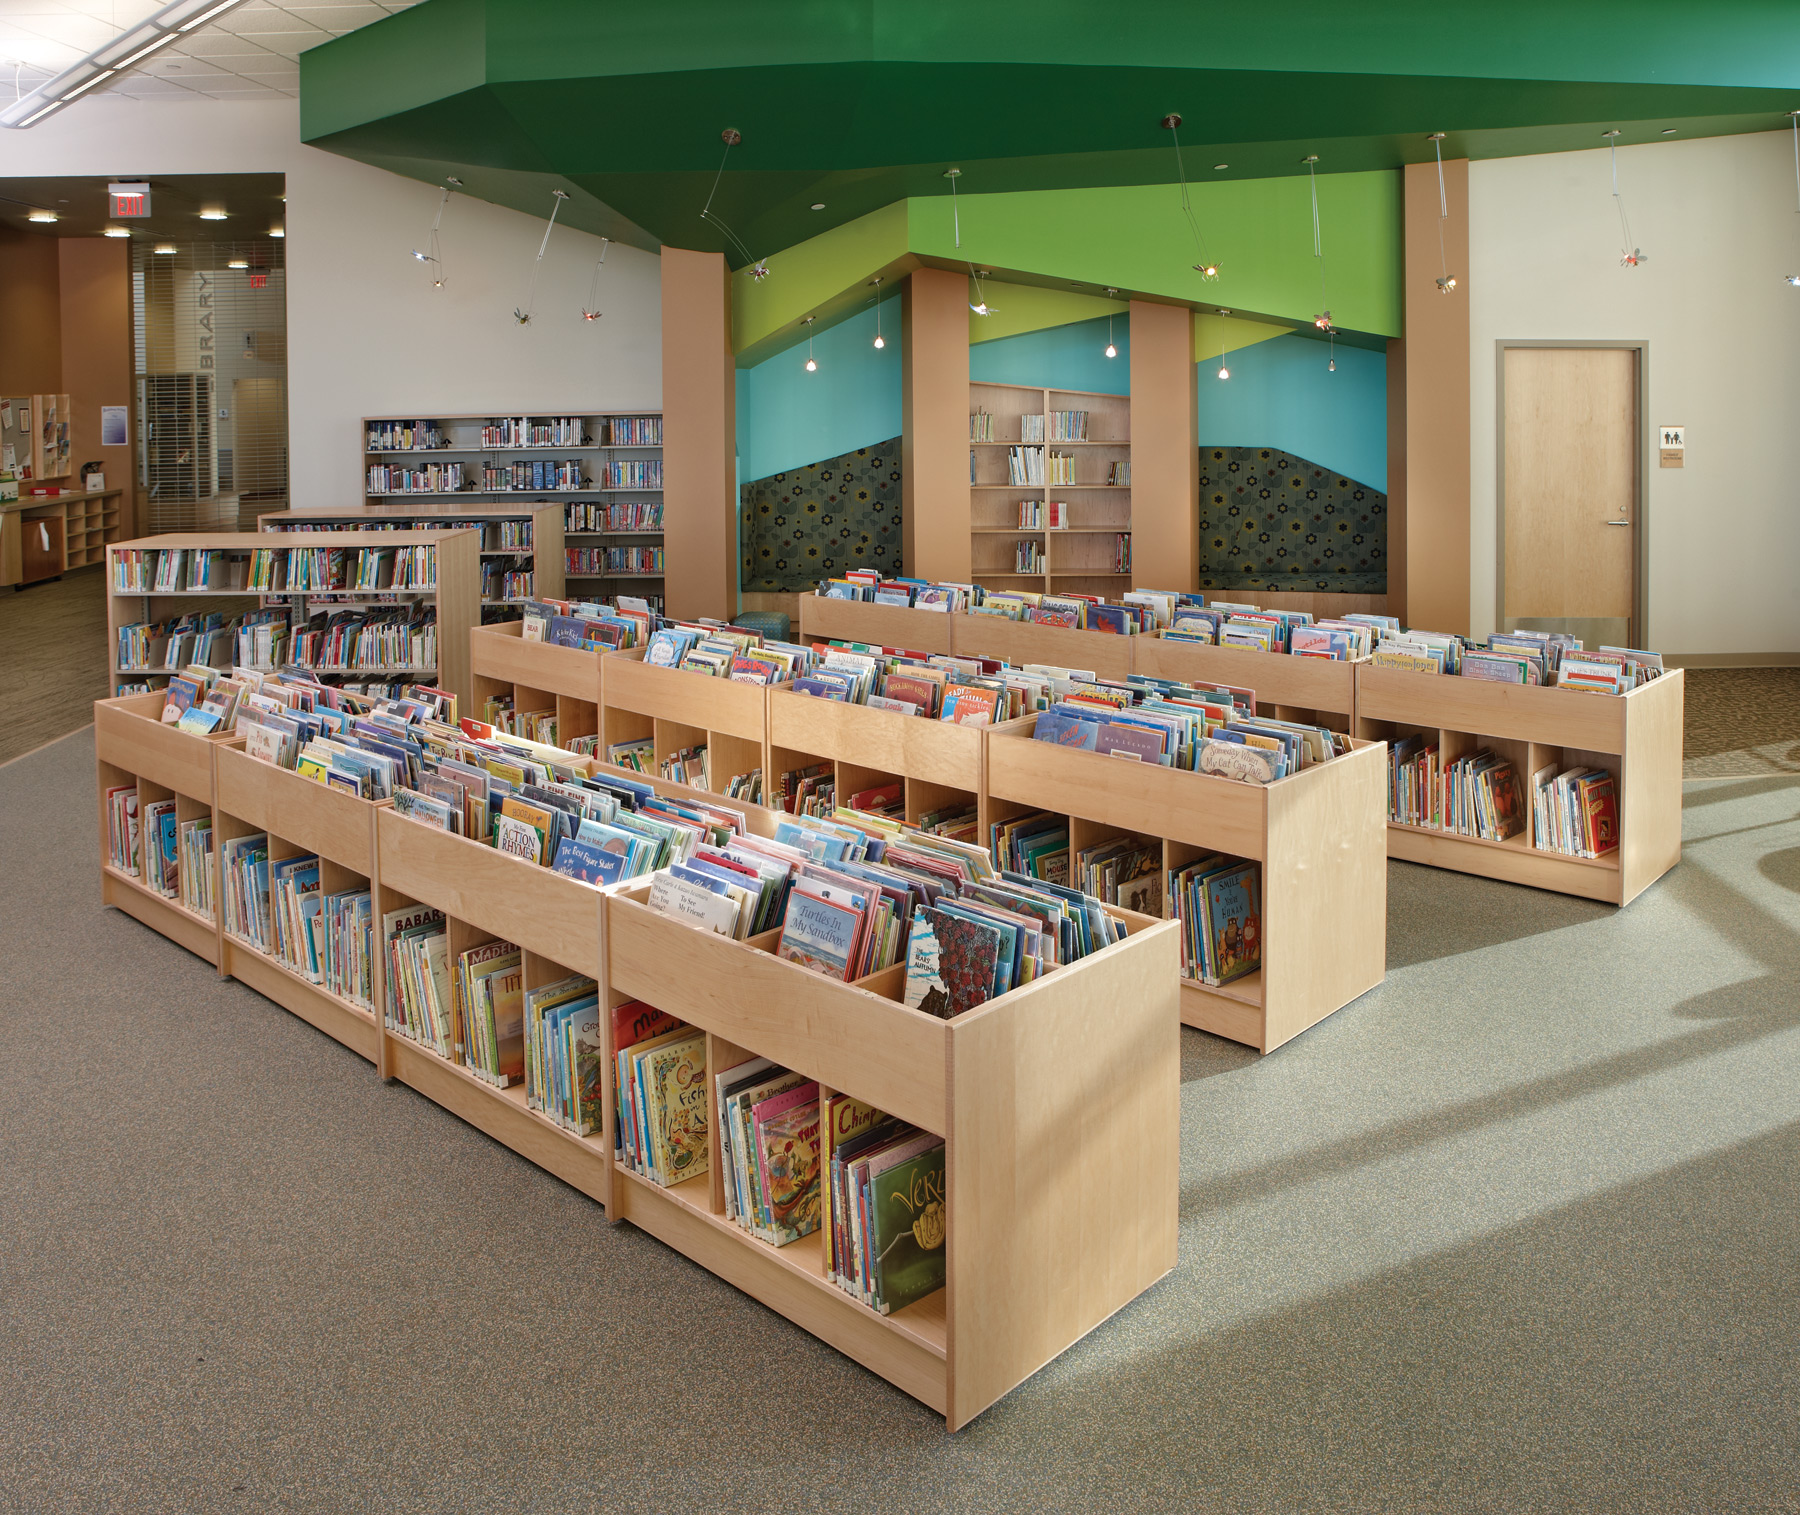 St Michael Public Library Mn Https Www